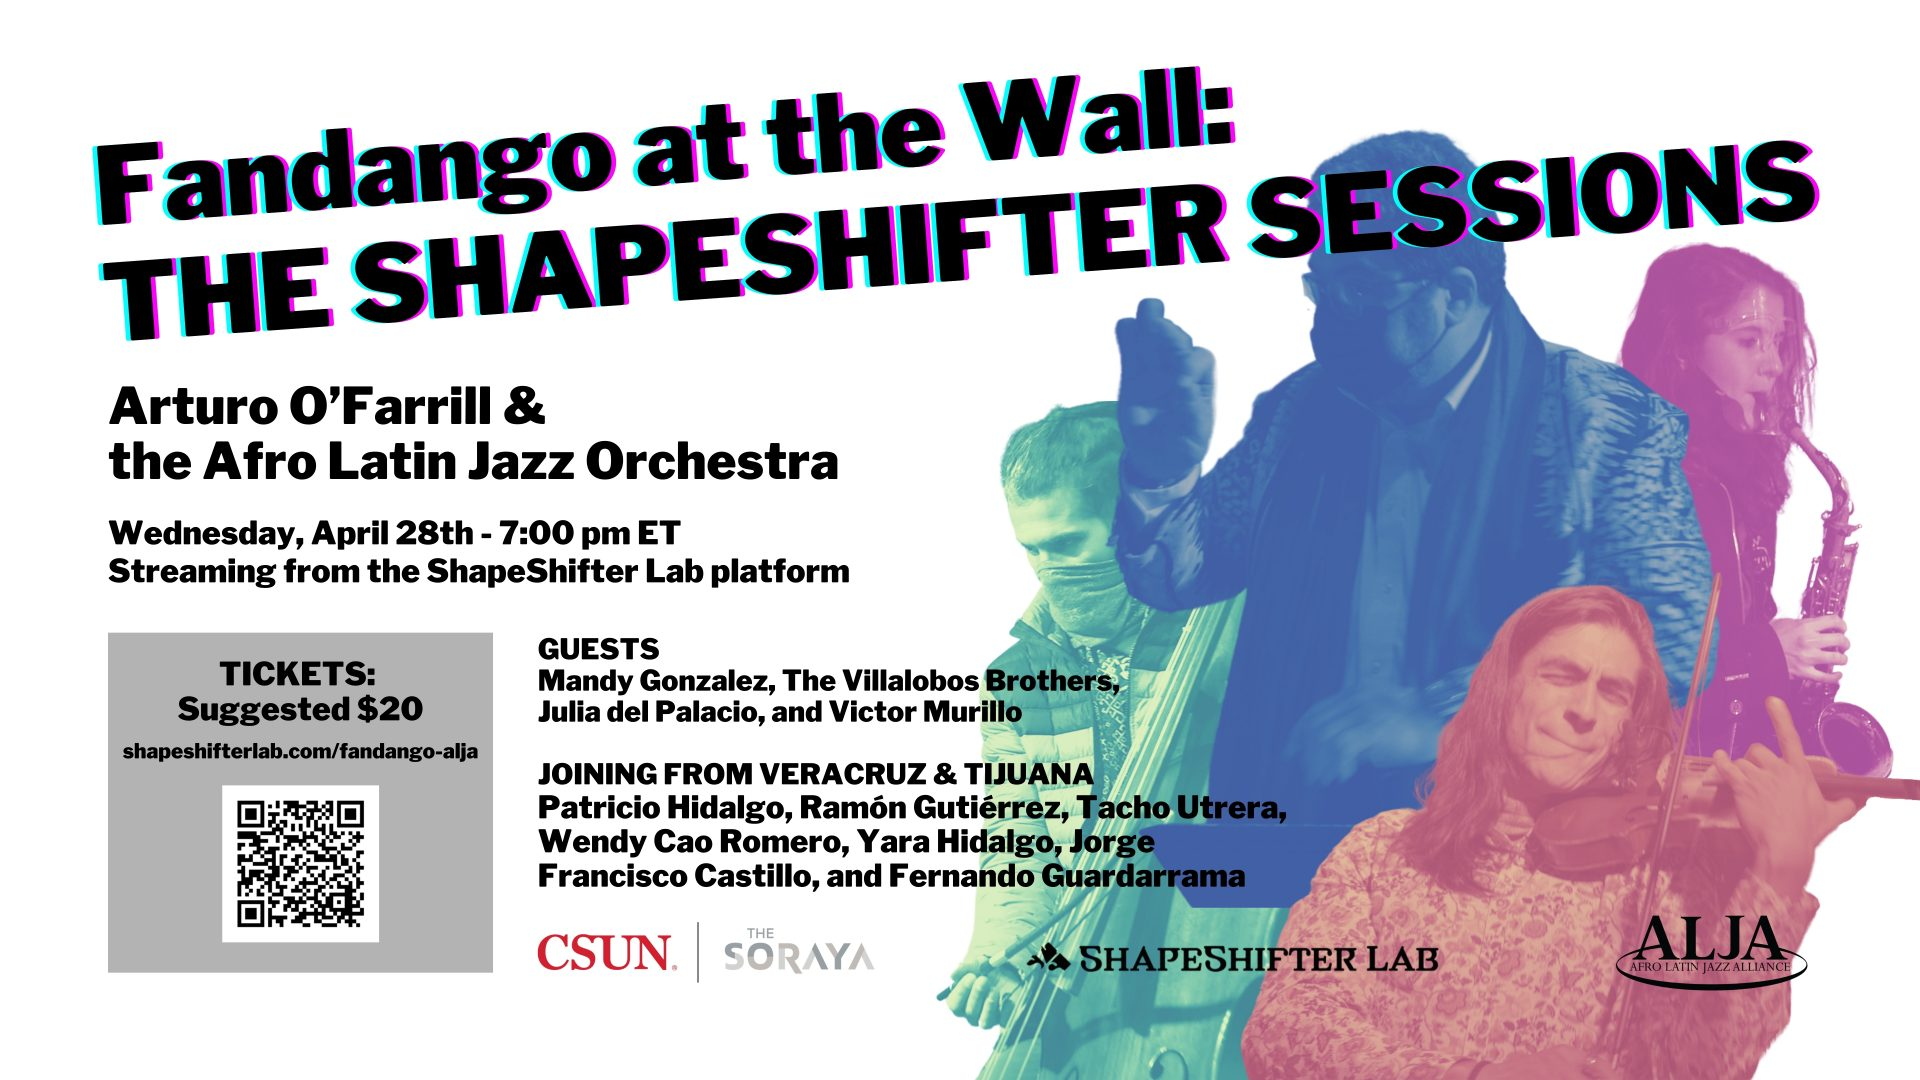 Fandango at the WallThe ShapeShifter SessionsArturo O'Farrill + Afro Latin Jazz Orchestra + FriendsWEDNESDAY, APRIL 28, 2021 @ 7:00 pm EST | 6:00 pm CST | 4:00 pm PST